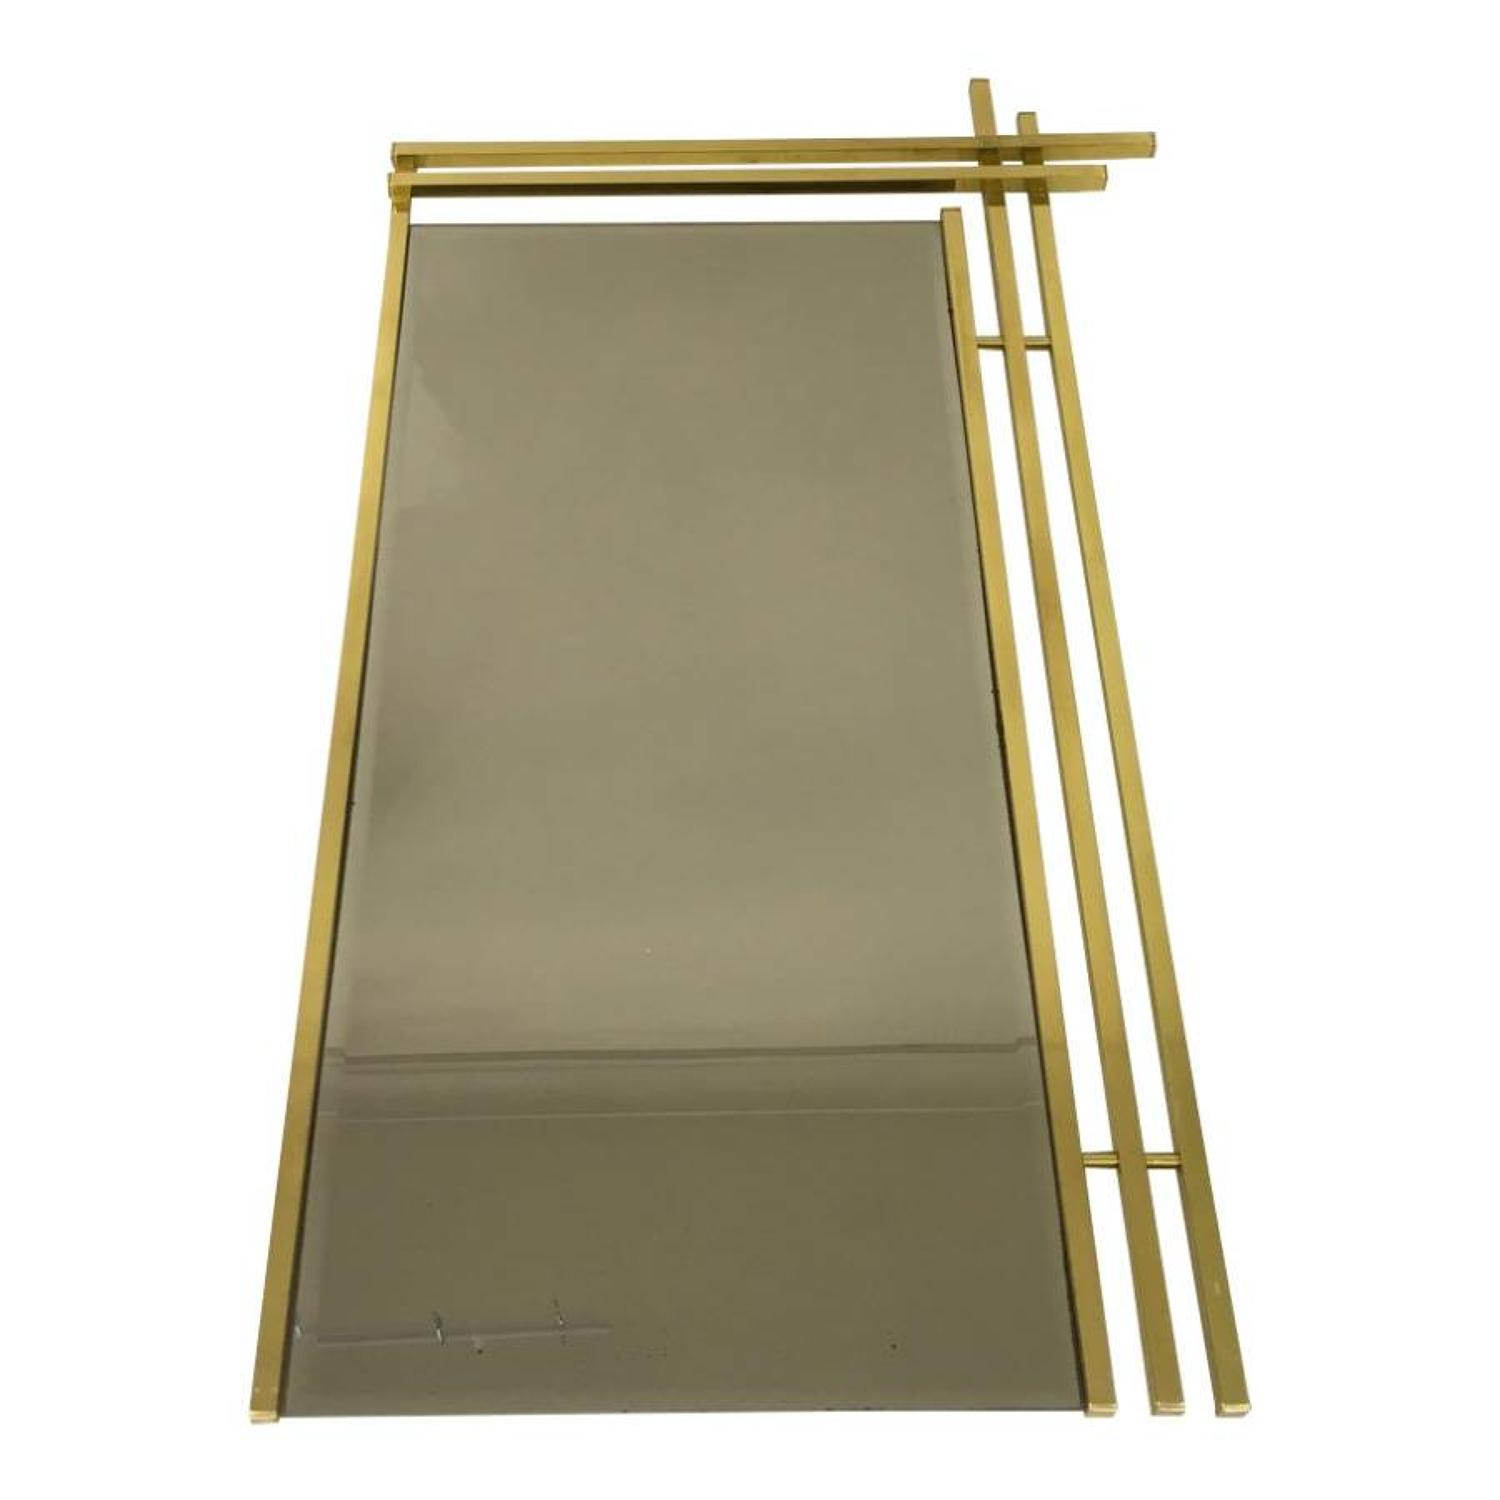 1970s Italian brass framed mirror